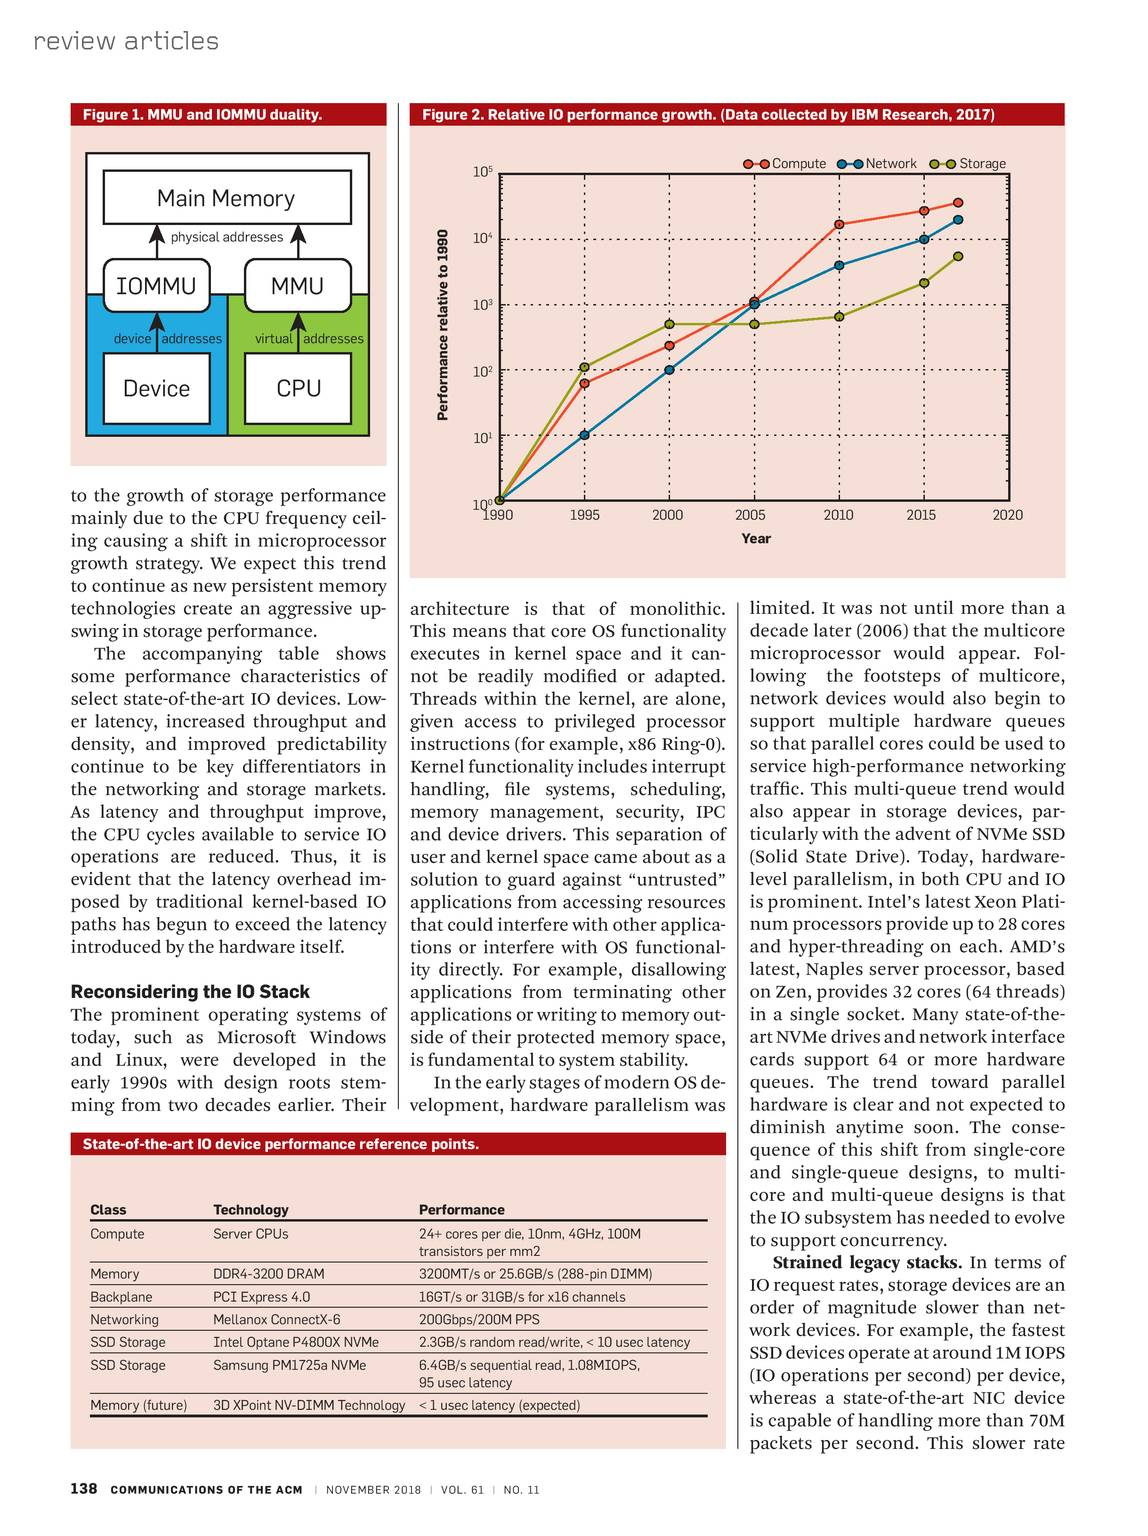 Communications of the ACM - November 2018 - page 139